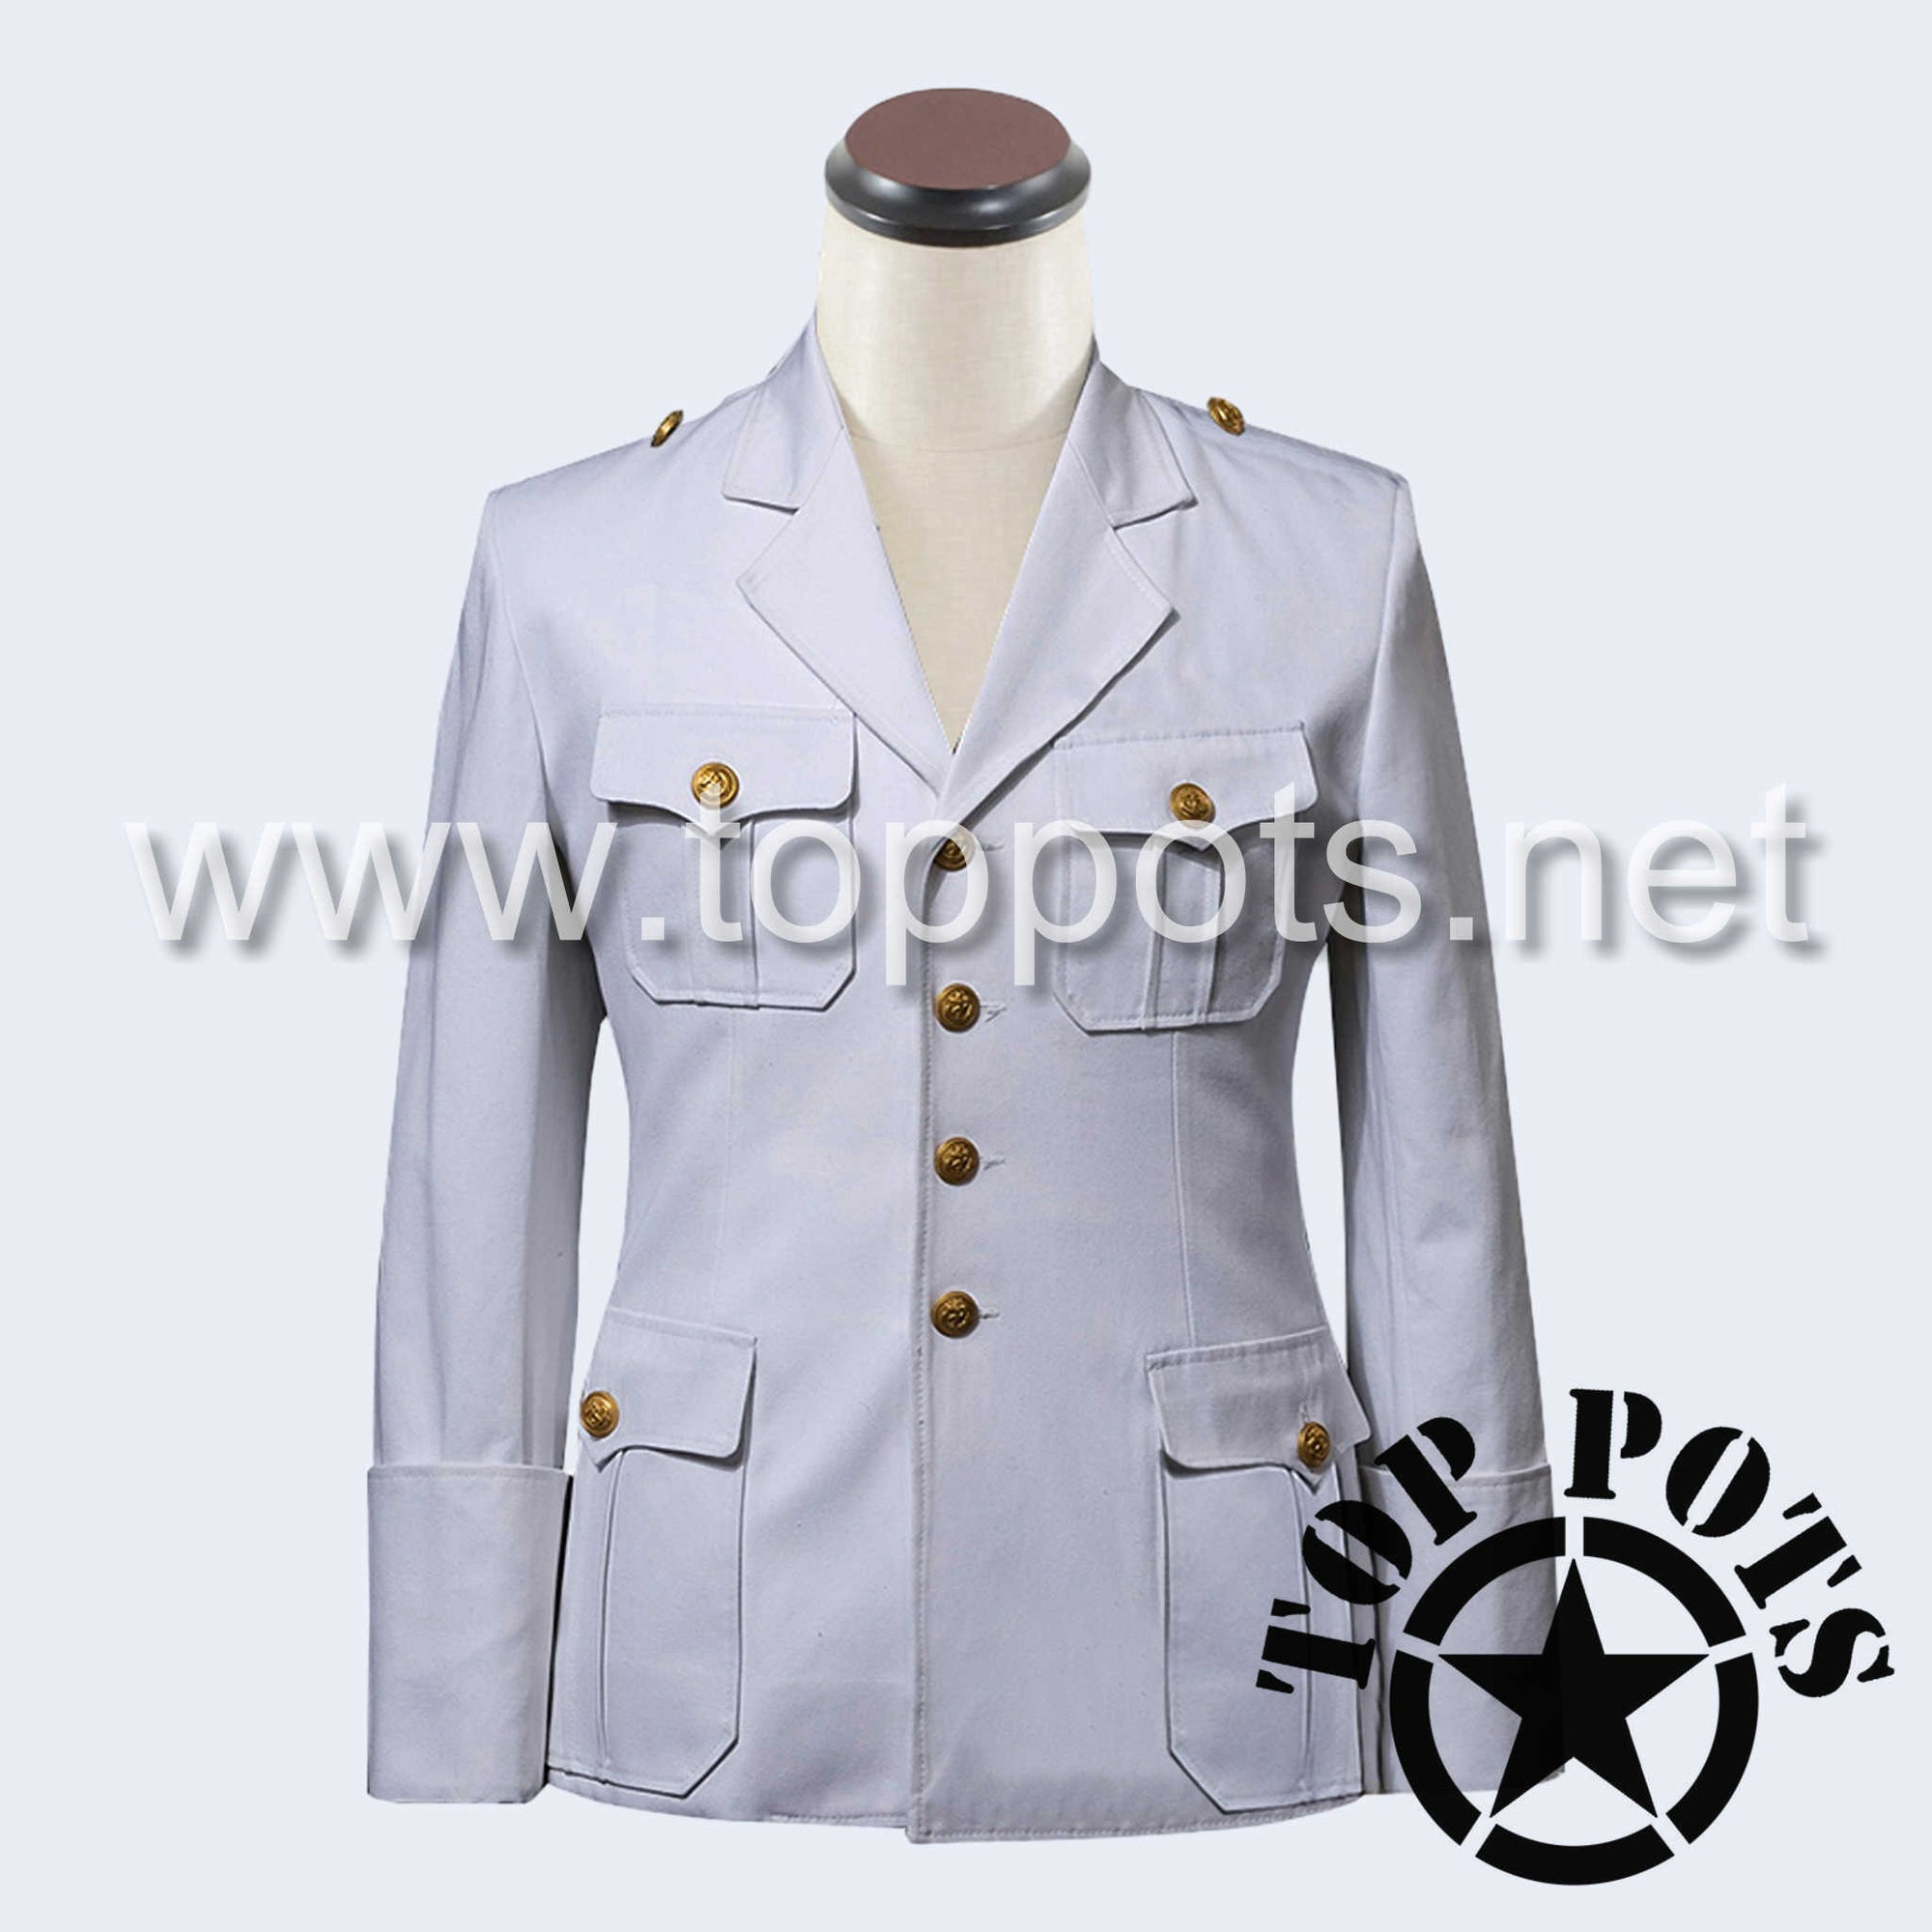 WWII German Navy Kriegsmarine Summer Uniform Jacket White Cotton - Officer's Tunic (Single Breasted)